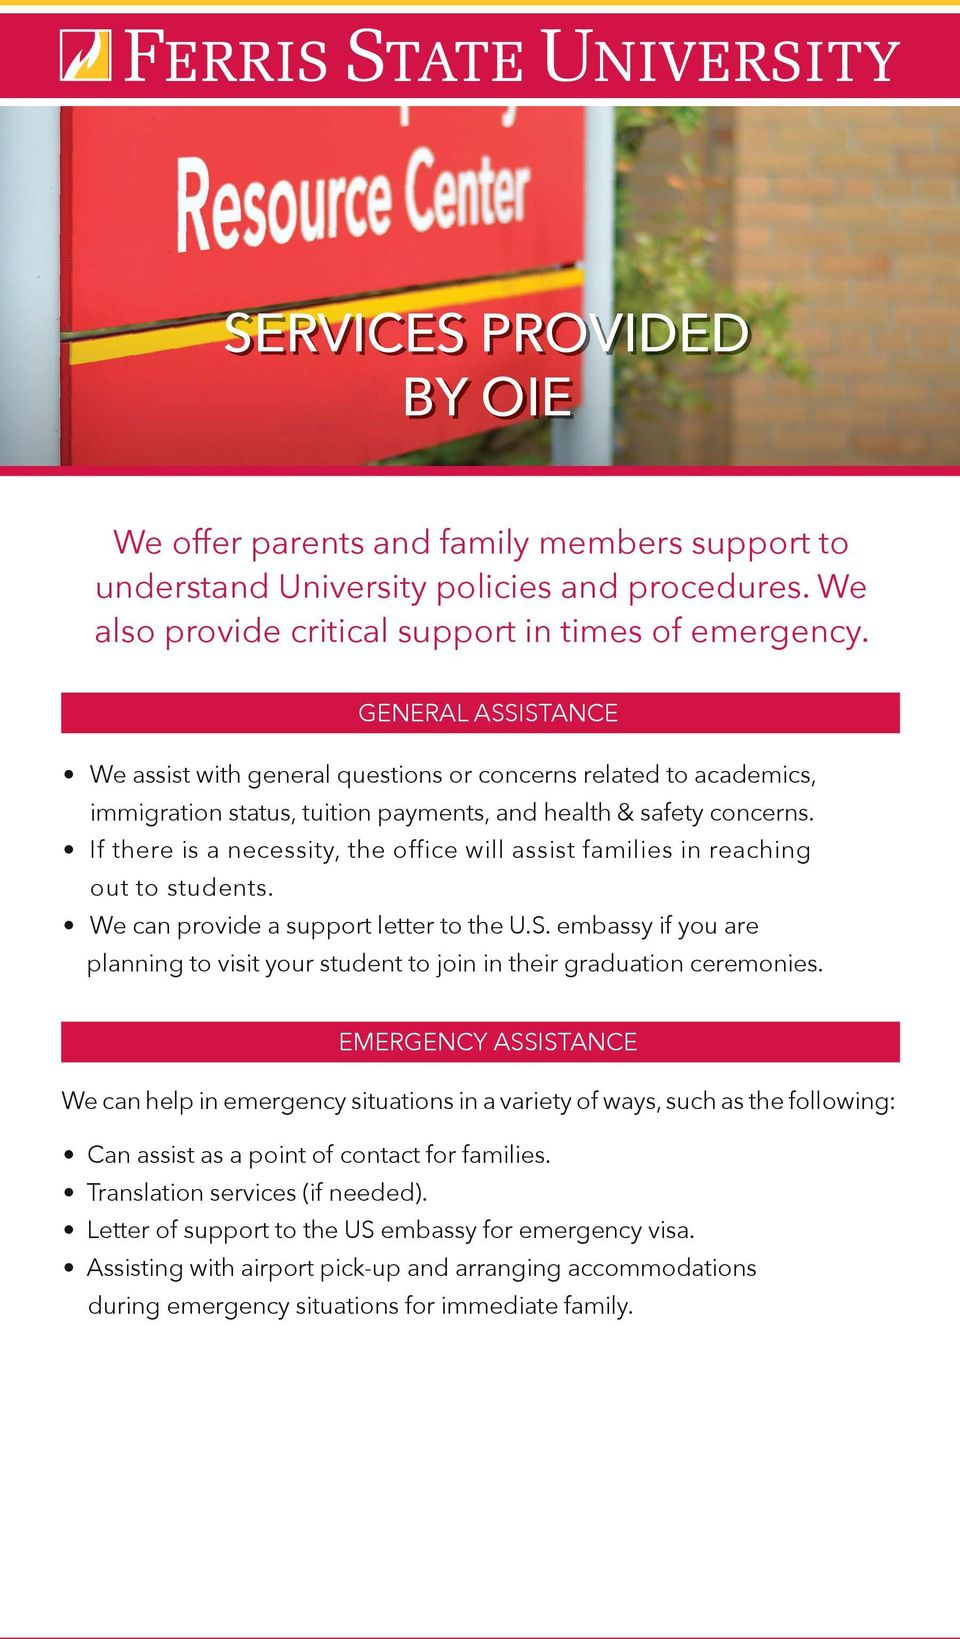 If there is a necessity, the office will assist families in reaching out to students. We can provide a support letter to the U.S.